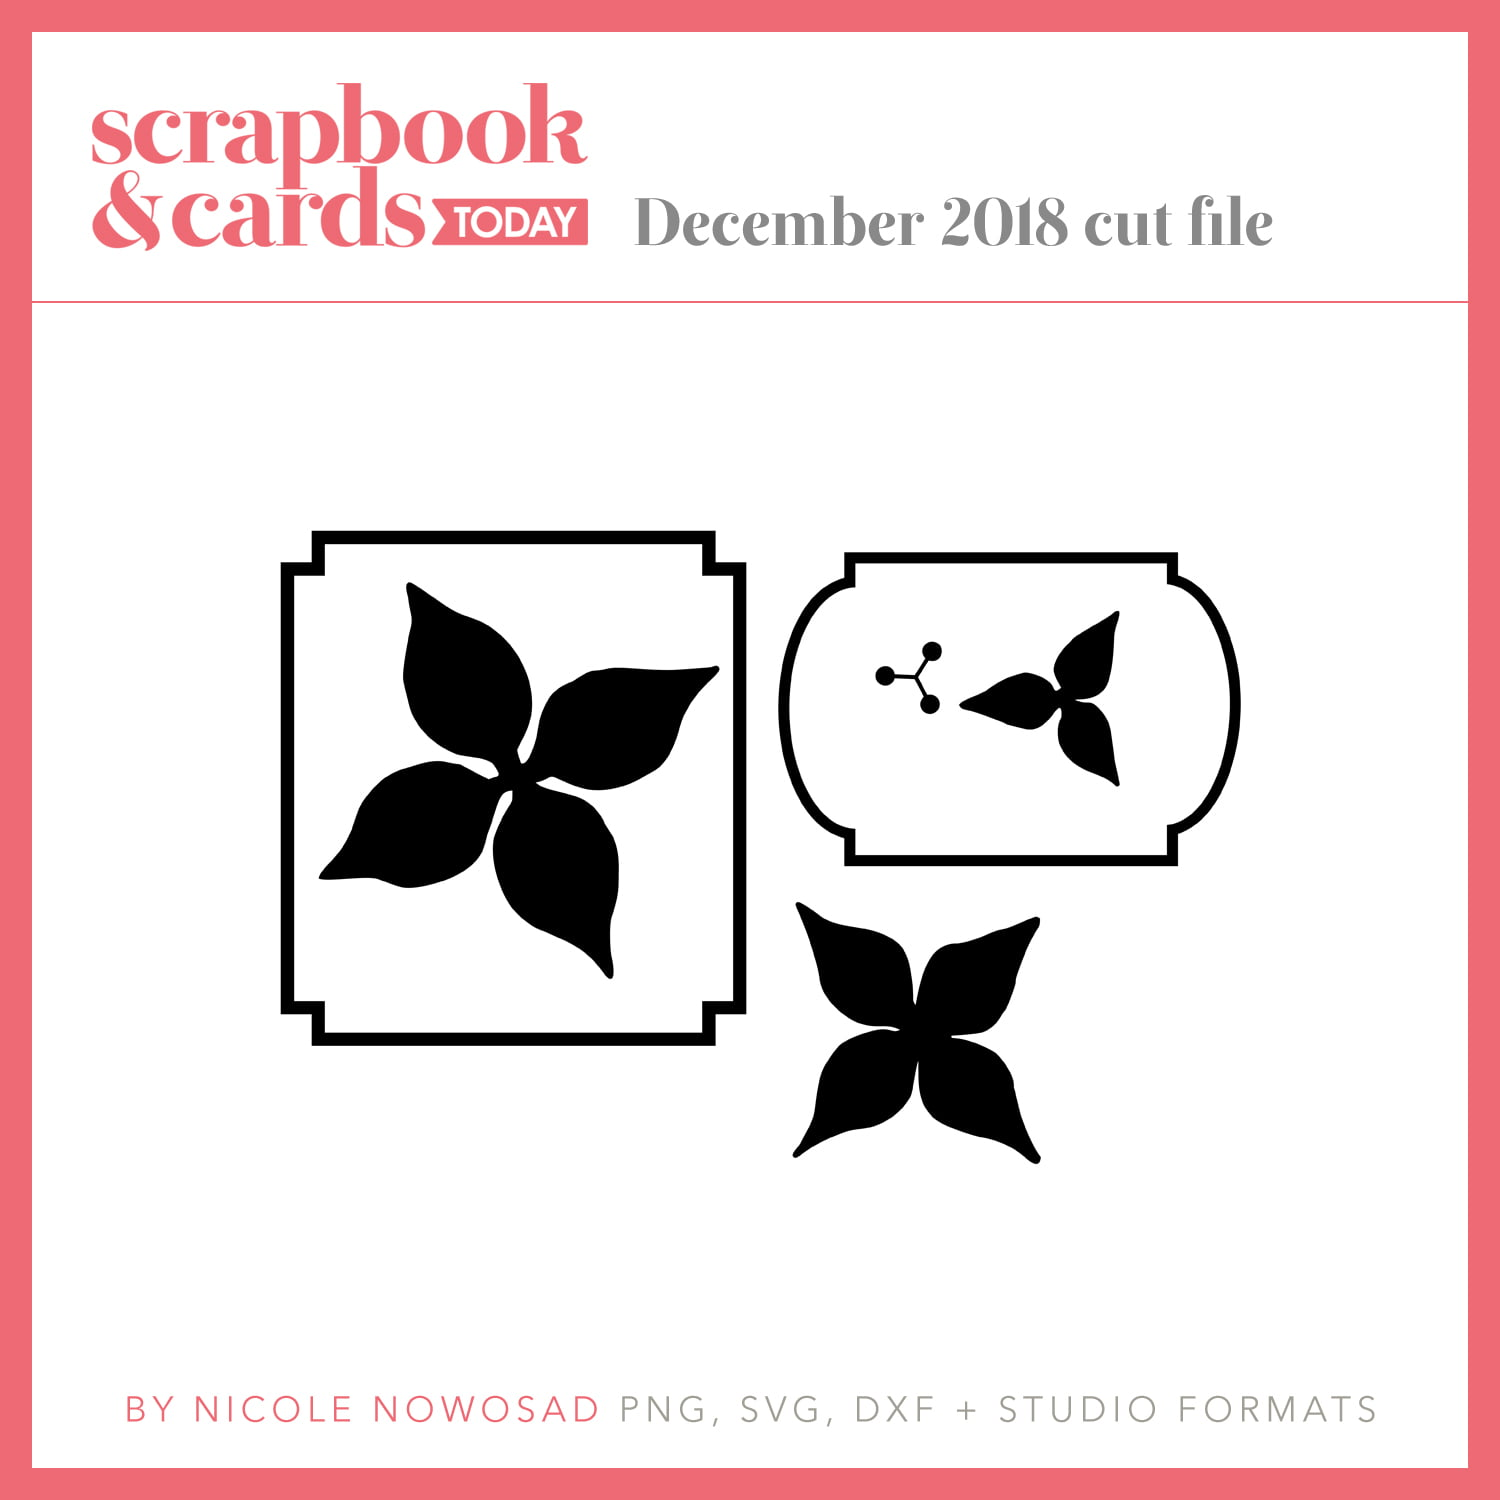 Scrapbook & Cards Today - December 2018 Freebie